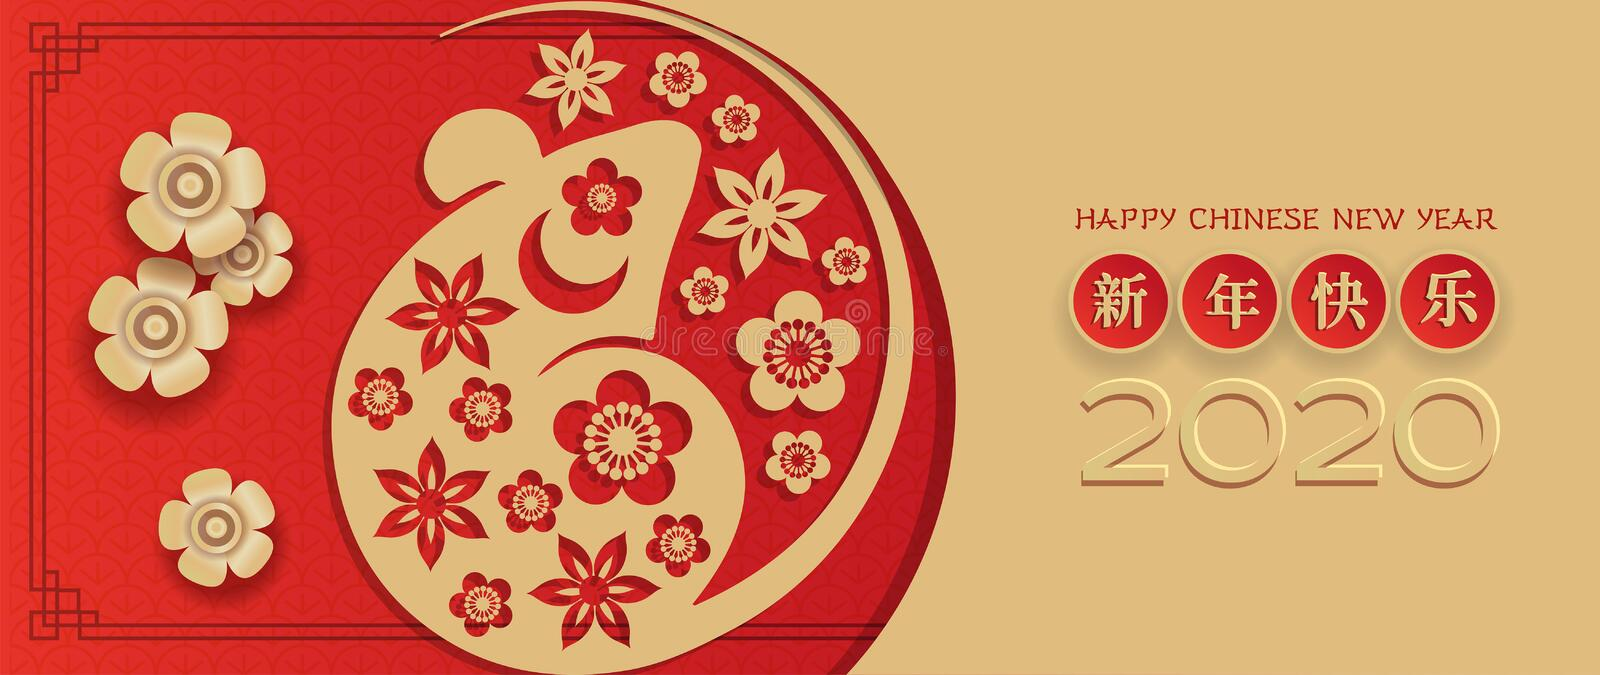 Chinese new year 2020 year of the rat. Red and gold paper cut rat character in yin and yang concept, flower and asian craft style. Chinese translation - Happy stock illustration